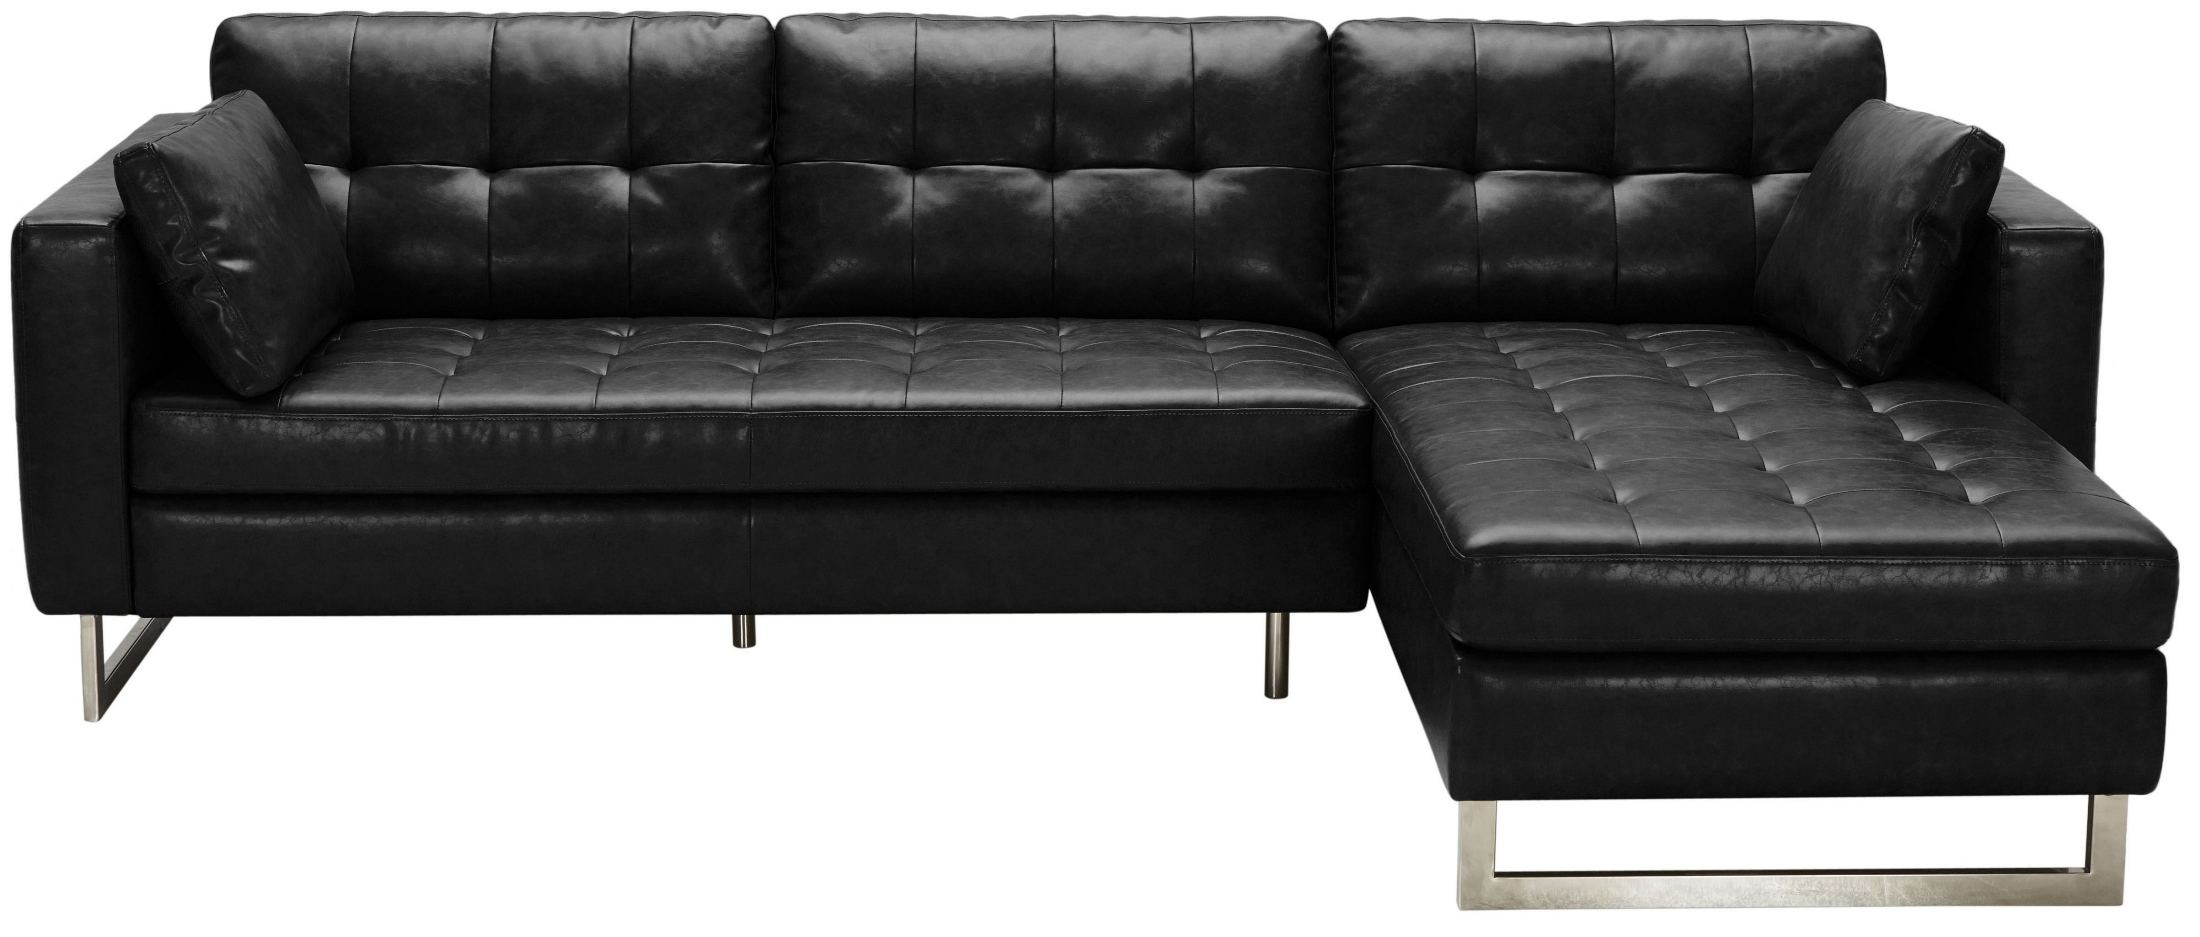 Wilson black fog leather sofa chaise from sunpan coleman for Black leather couch with chaise